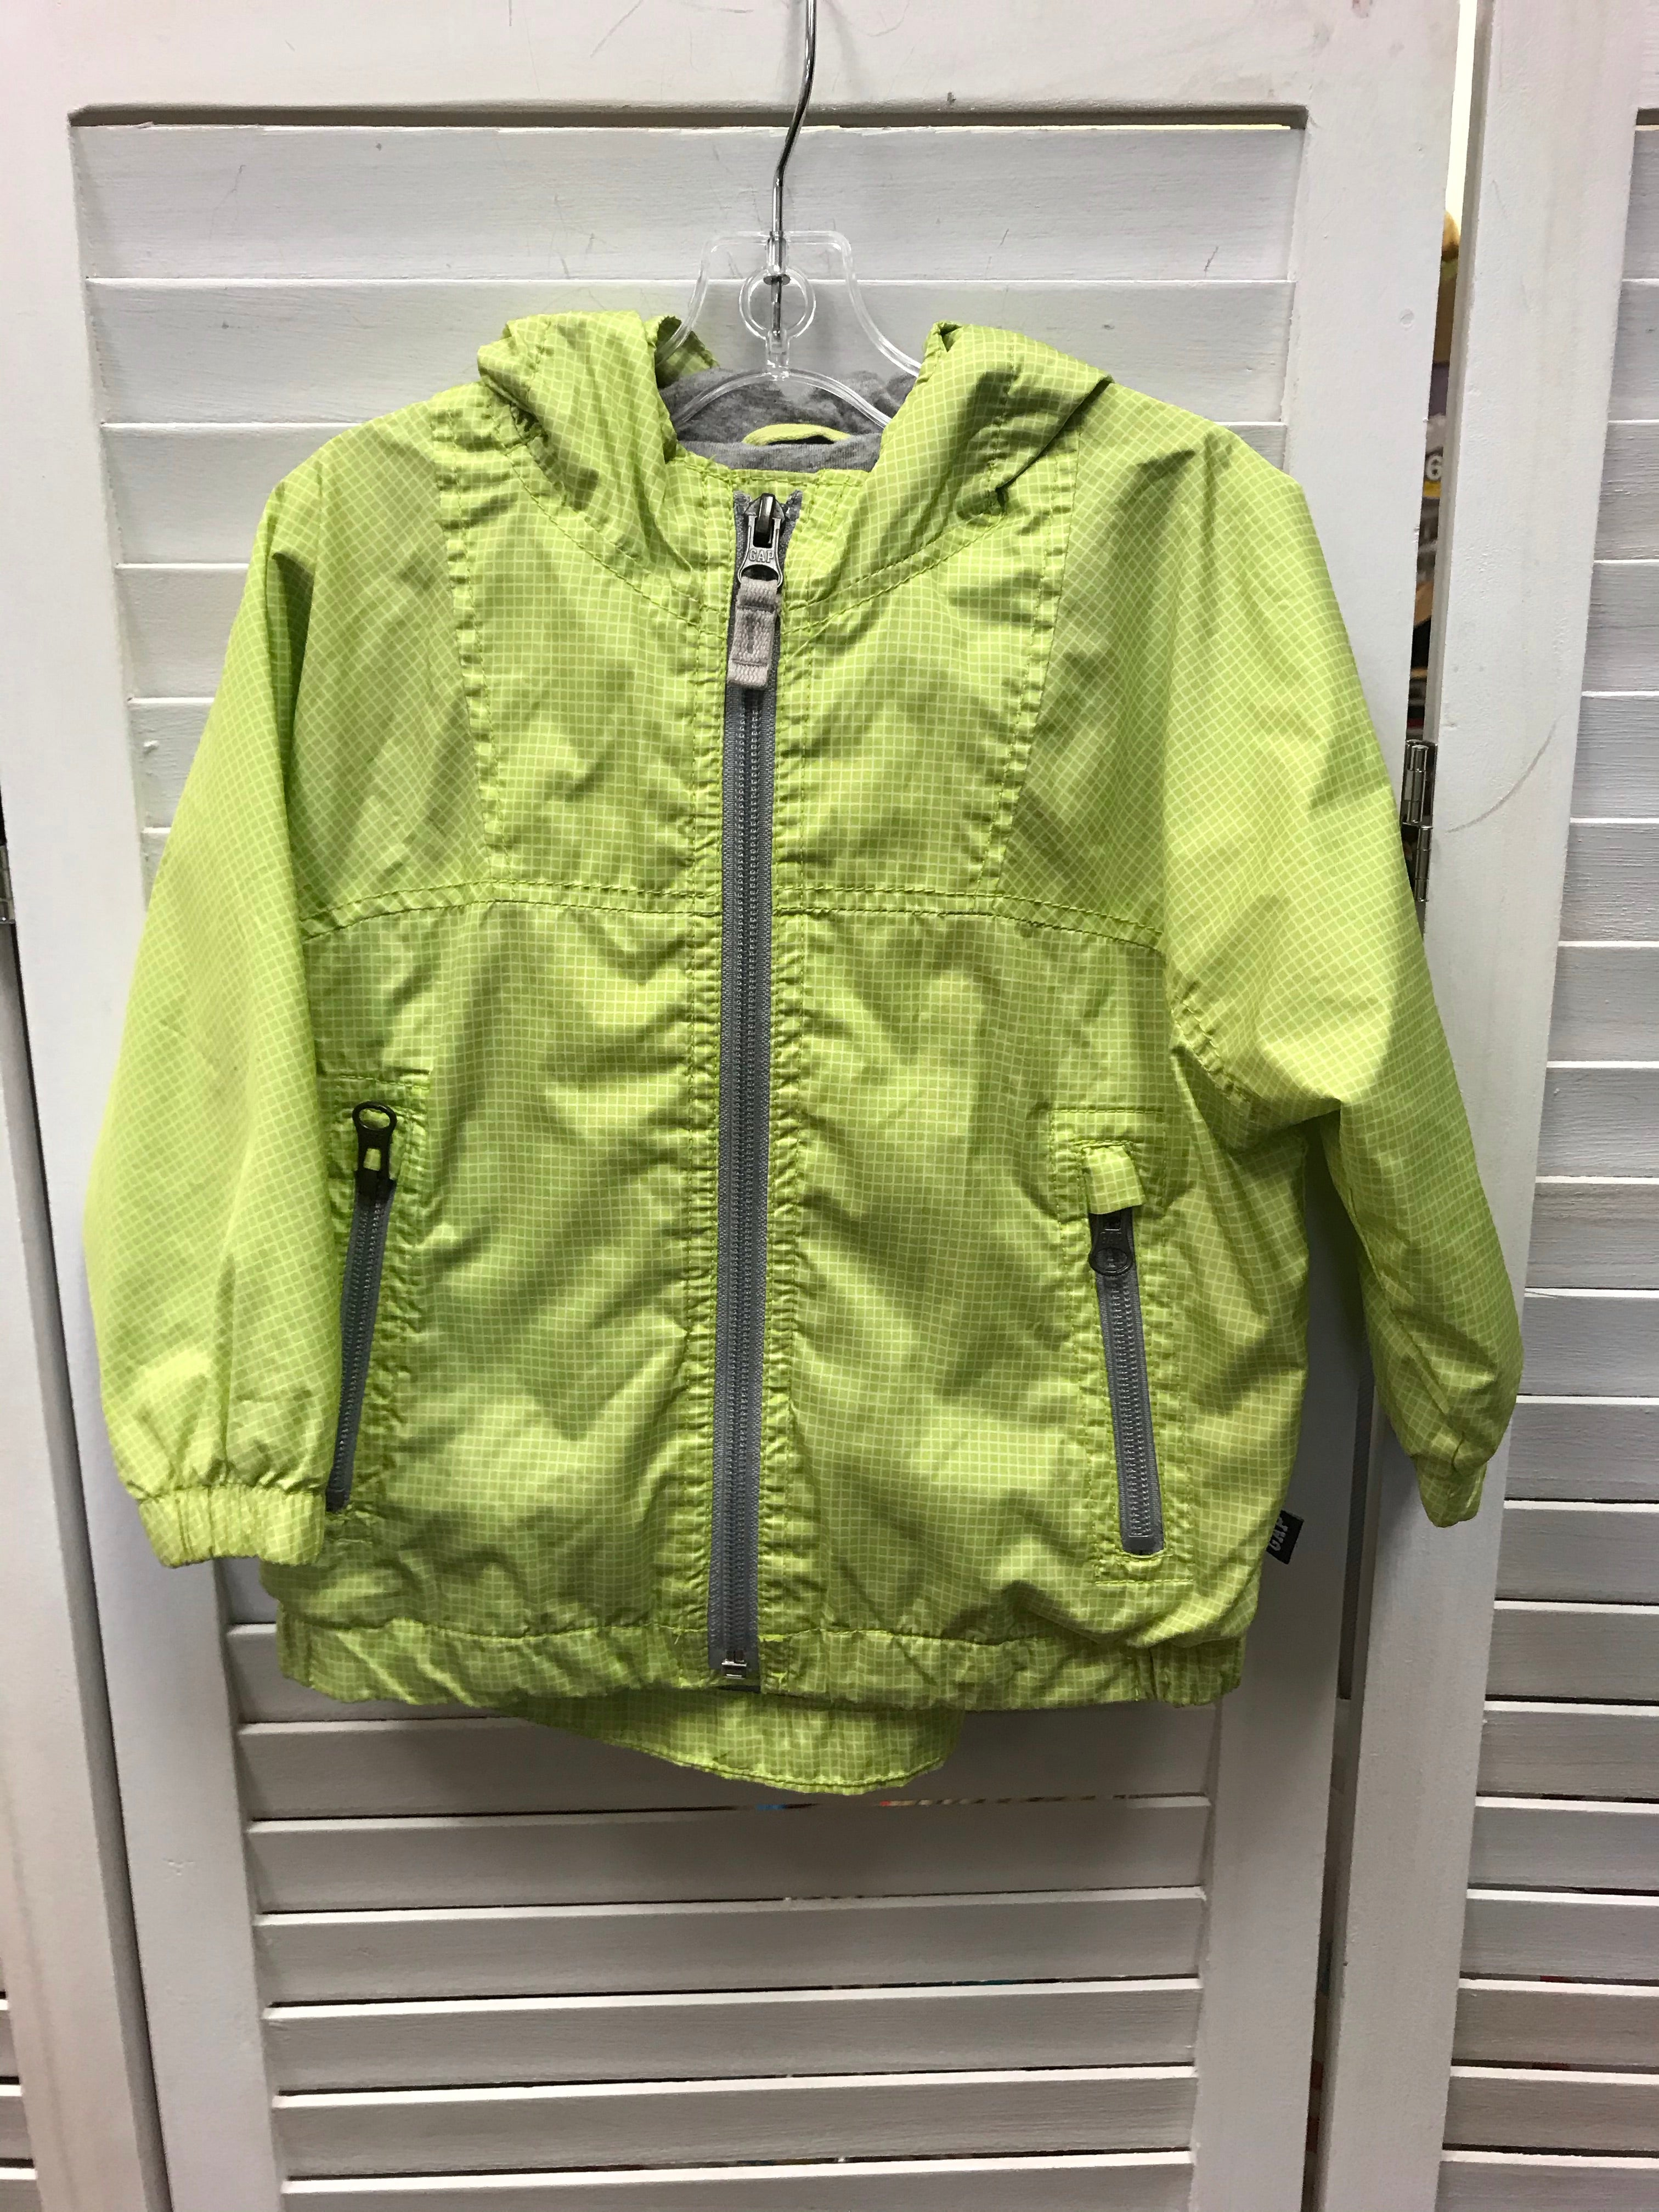 Baby gap rain jacket 12-18 months - Le Bébé Chic Boutique